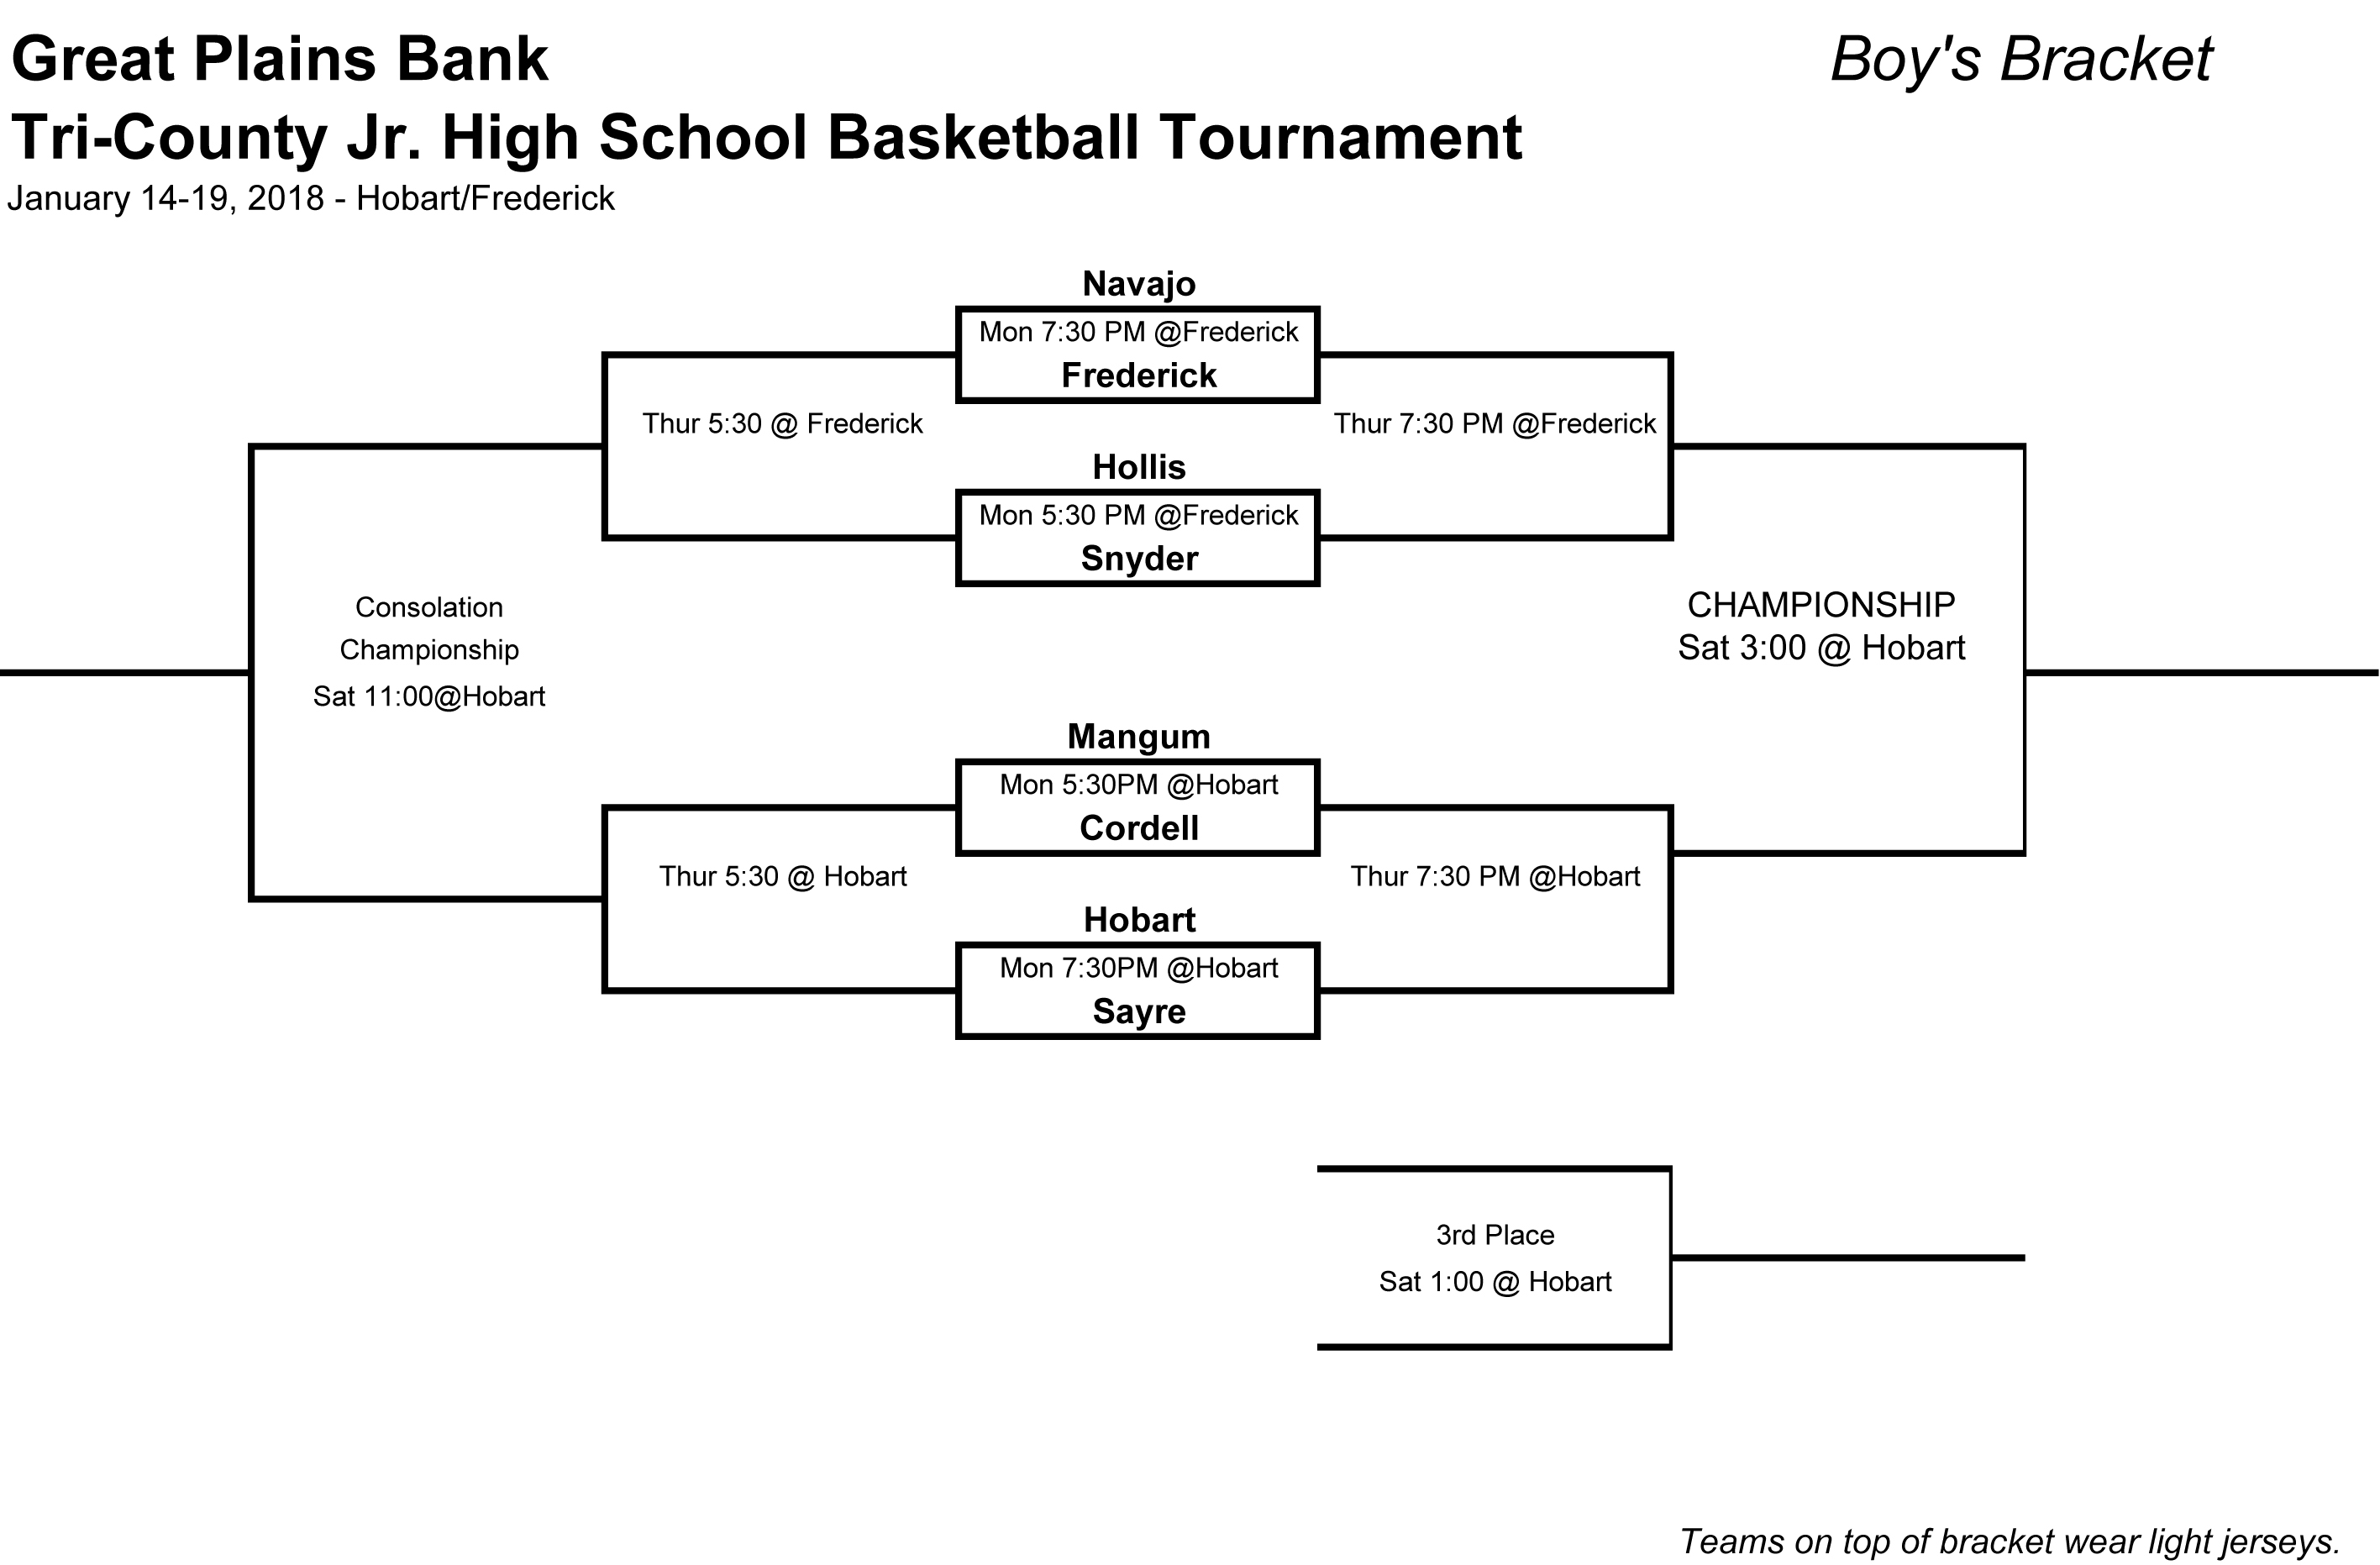 1545165772-2019tri_county_jh_tournament_boys_bracket_final__1_